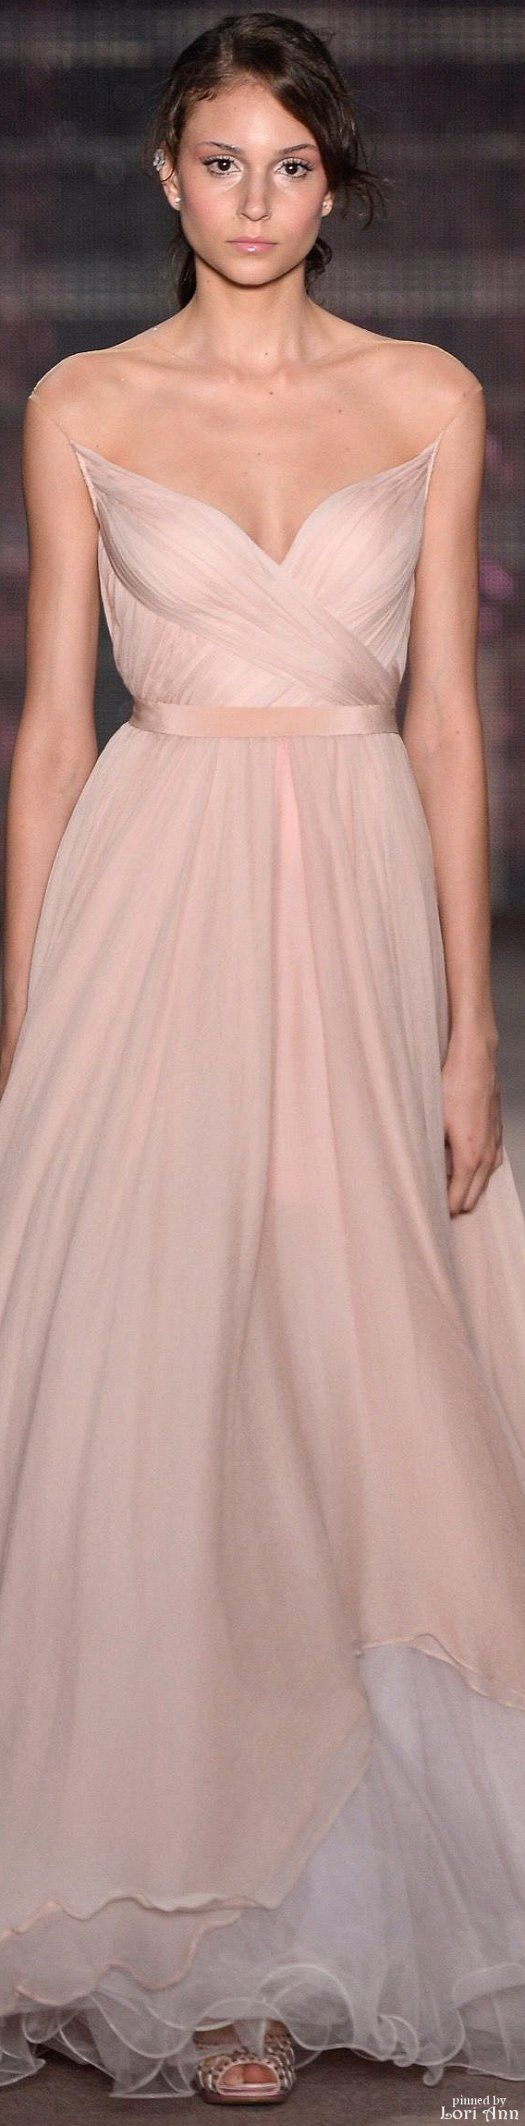 Nude and Blush Gowns - Shop Now   Vestiditos